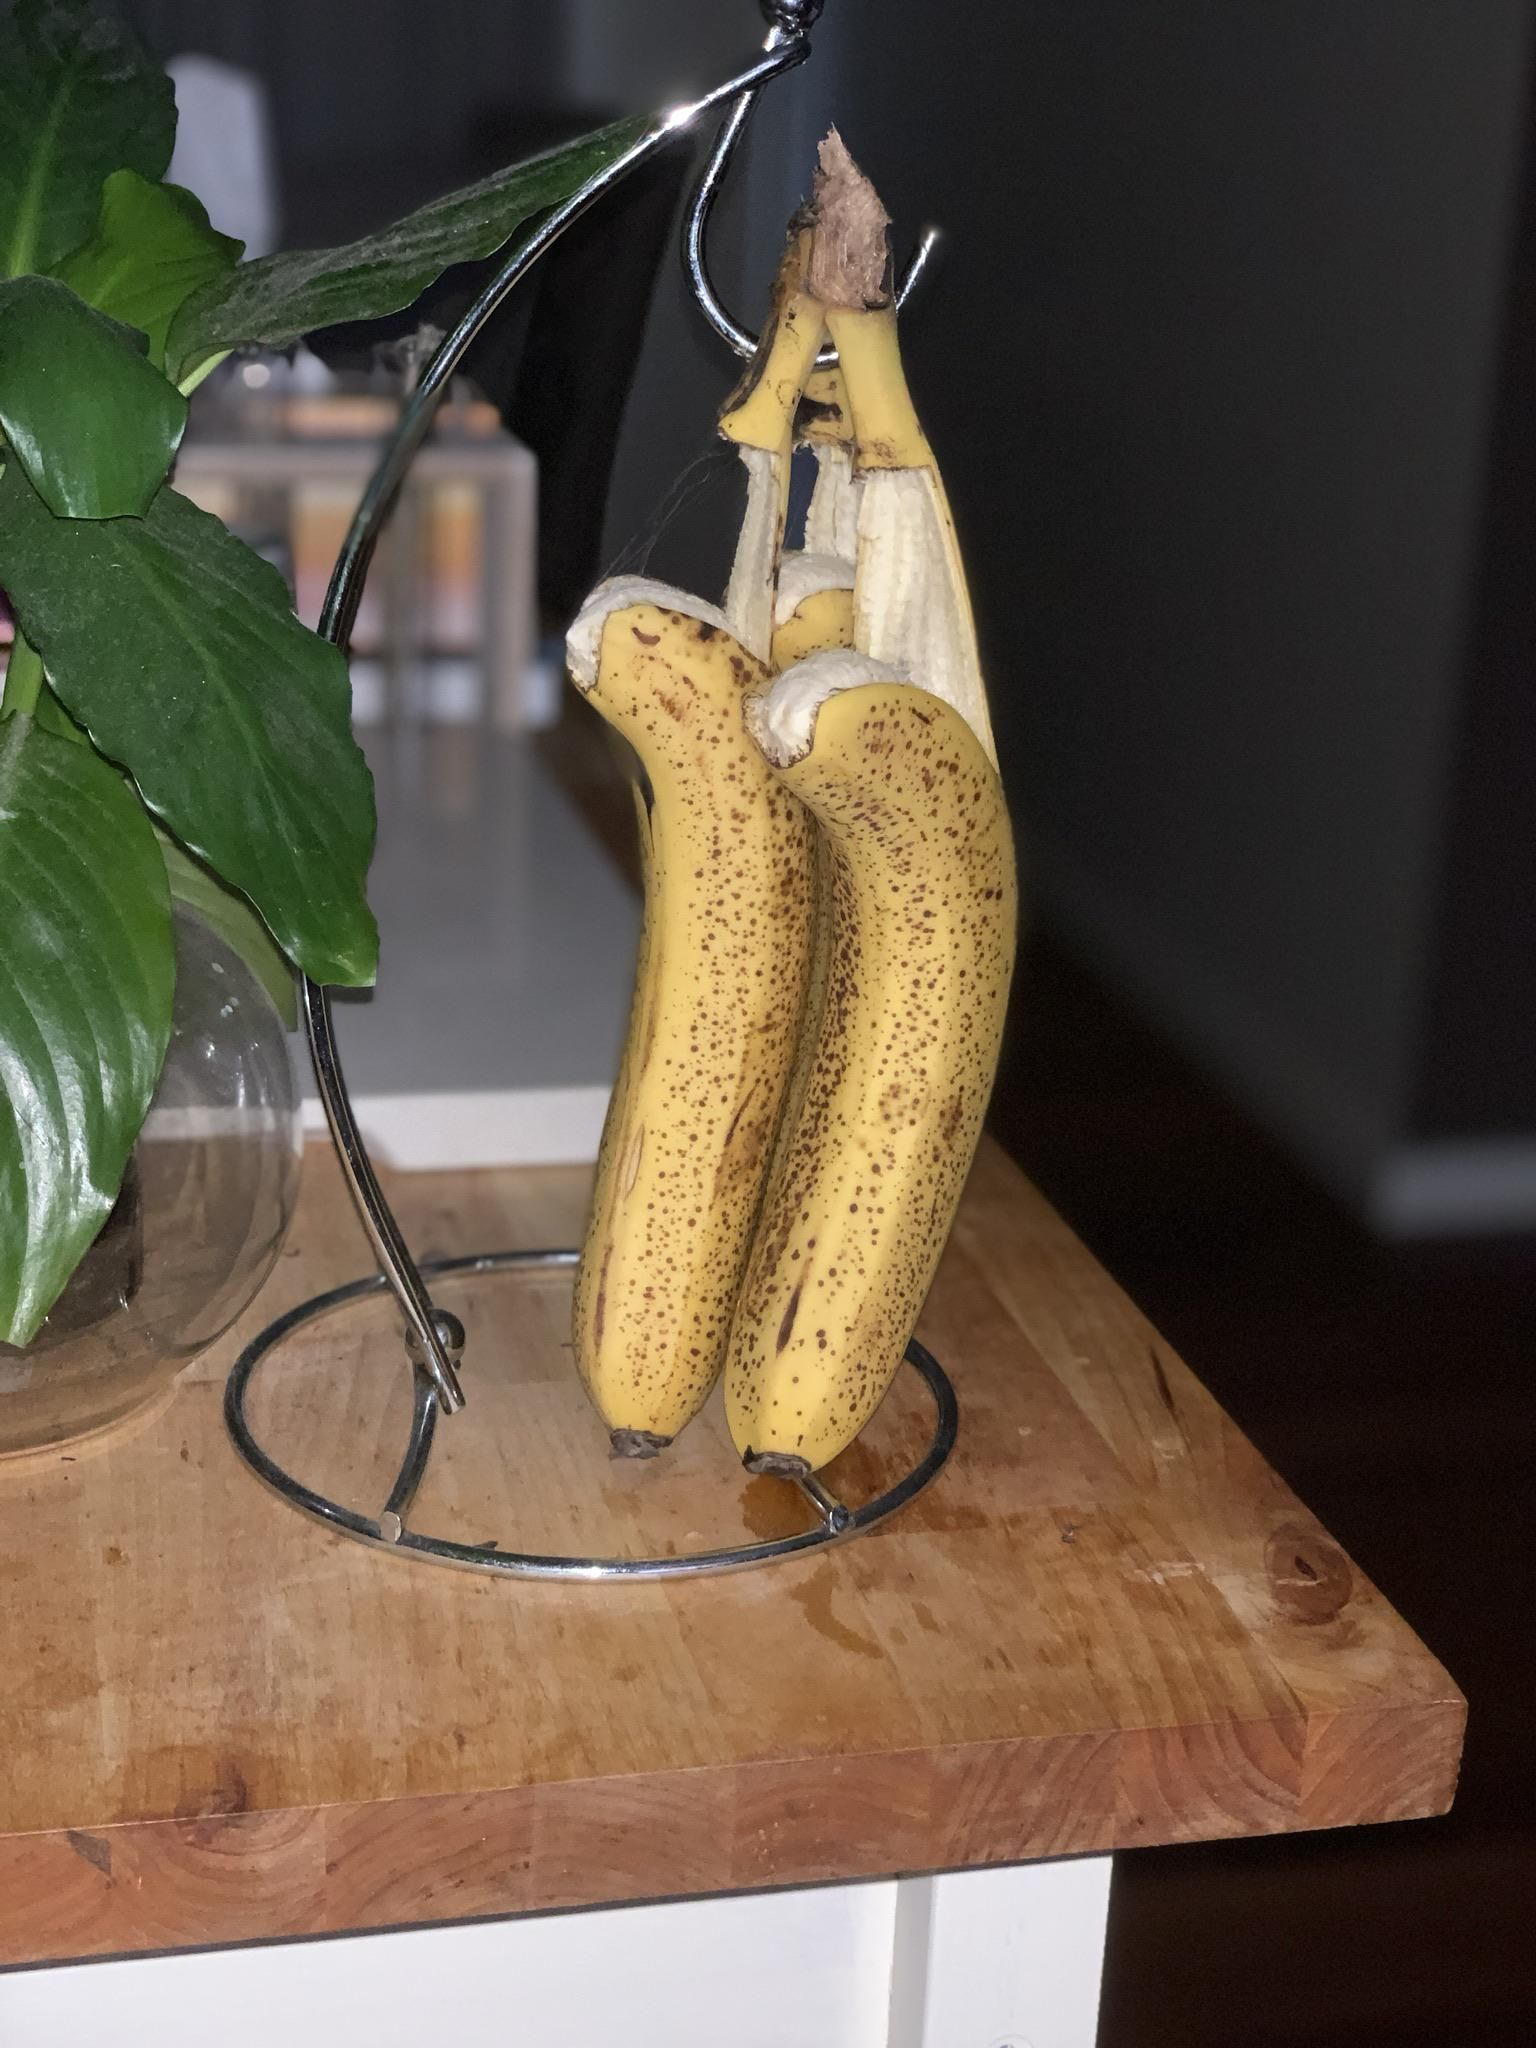 Our bananas committed suicide overnight